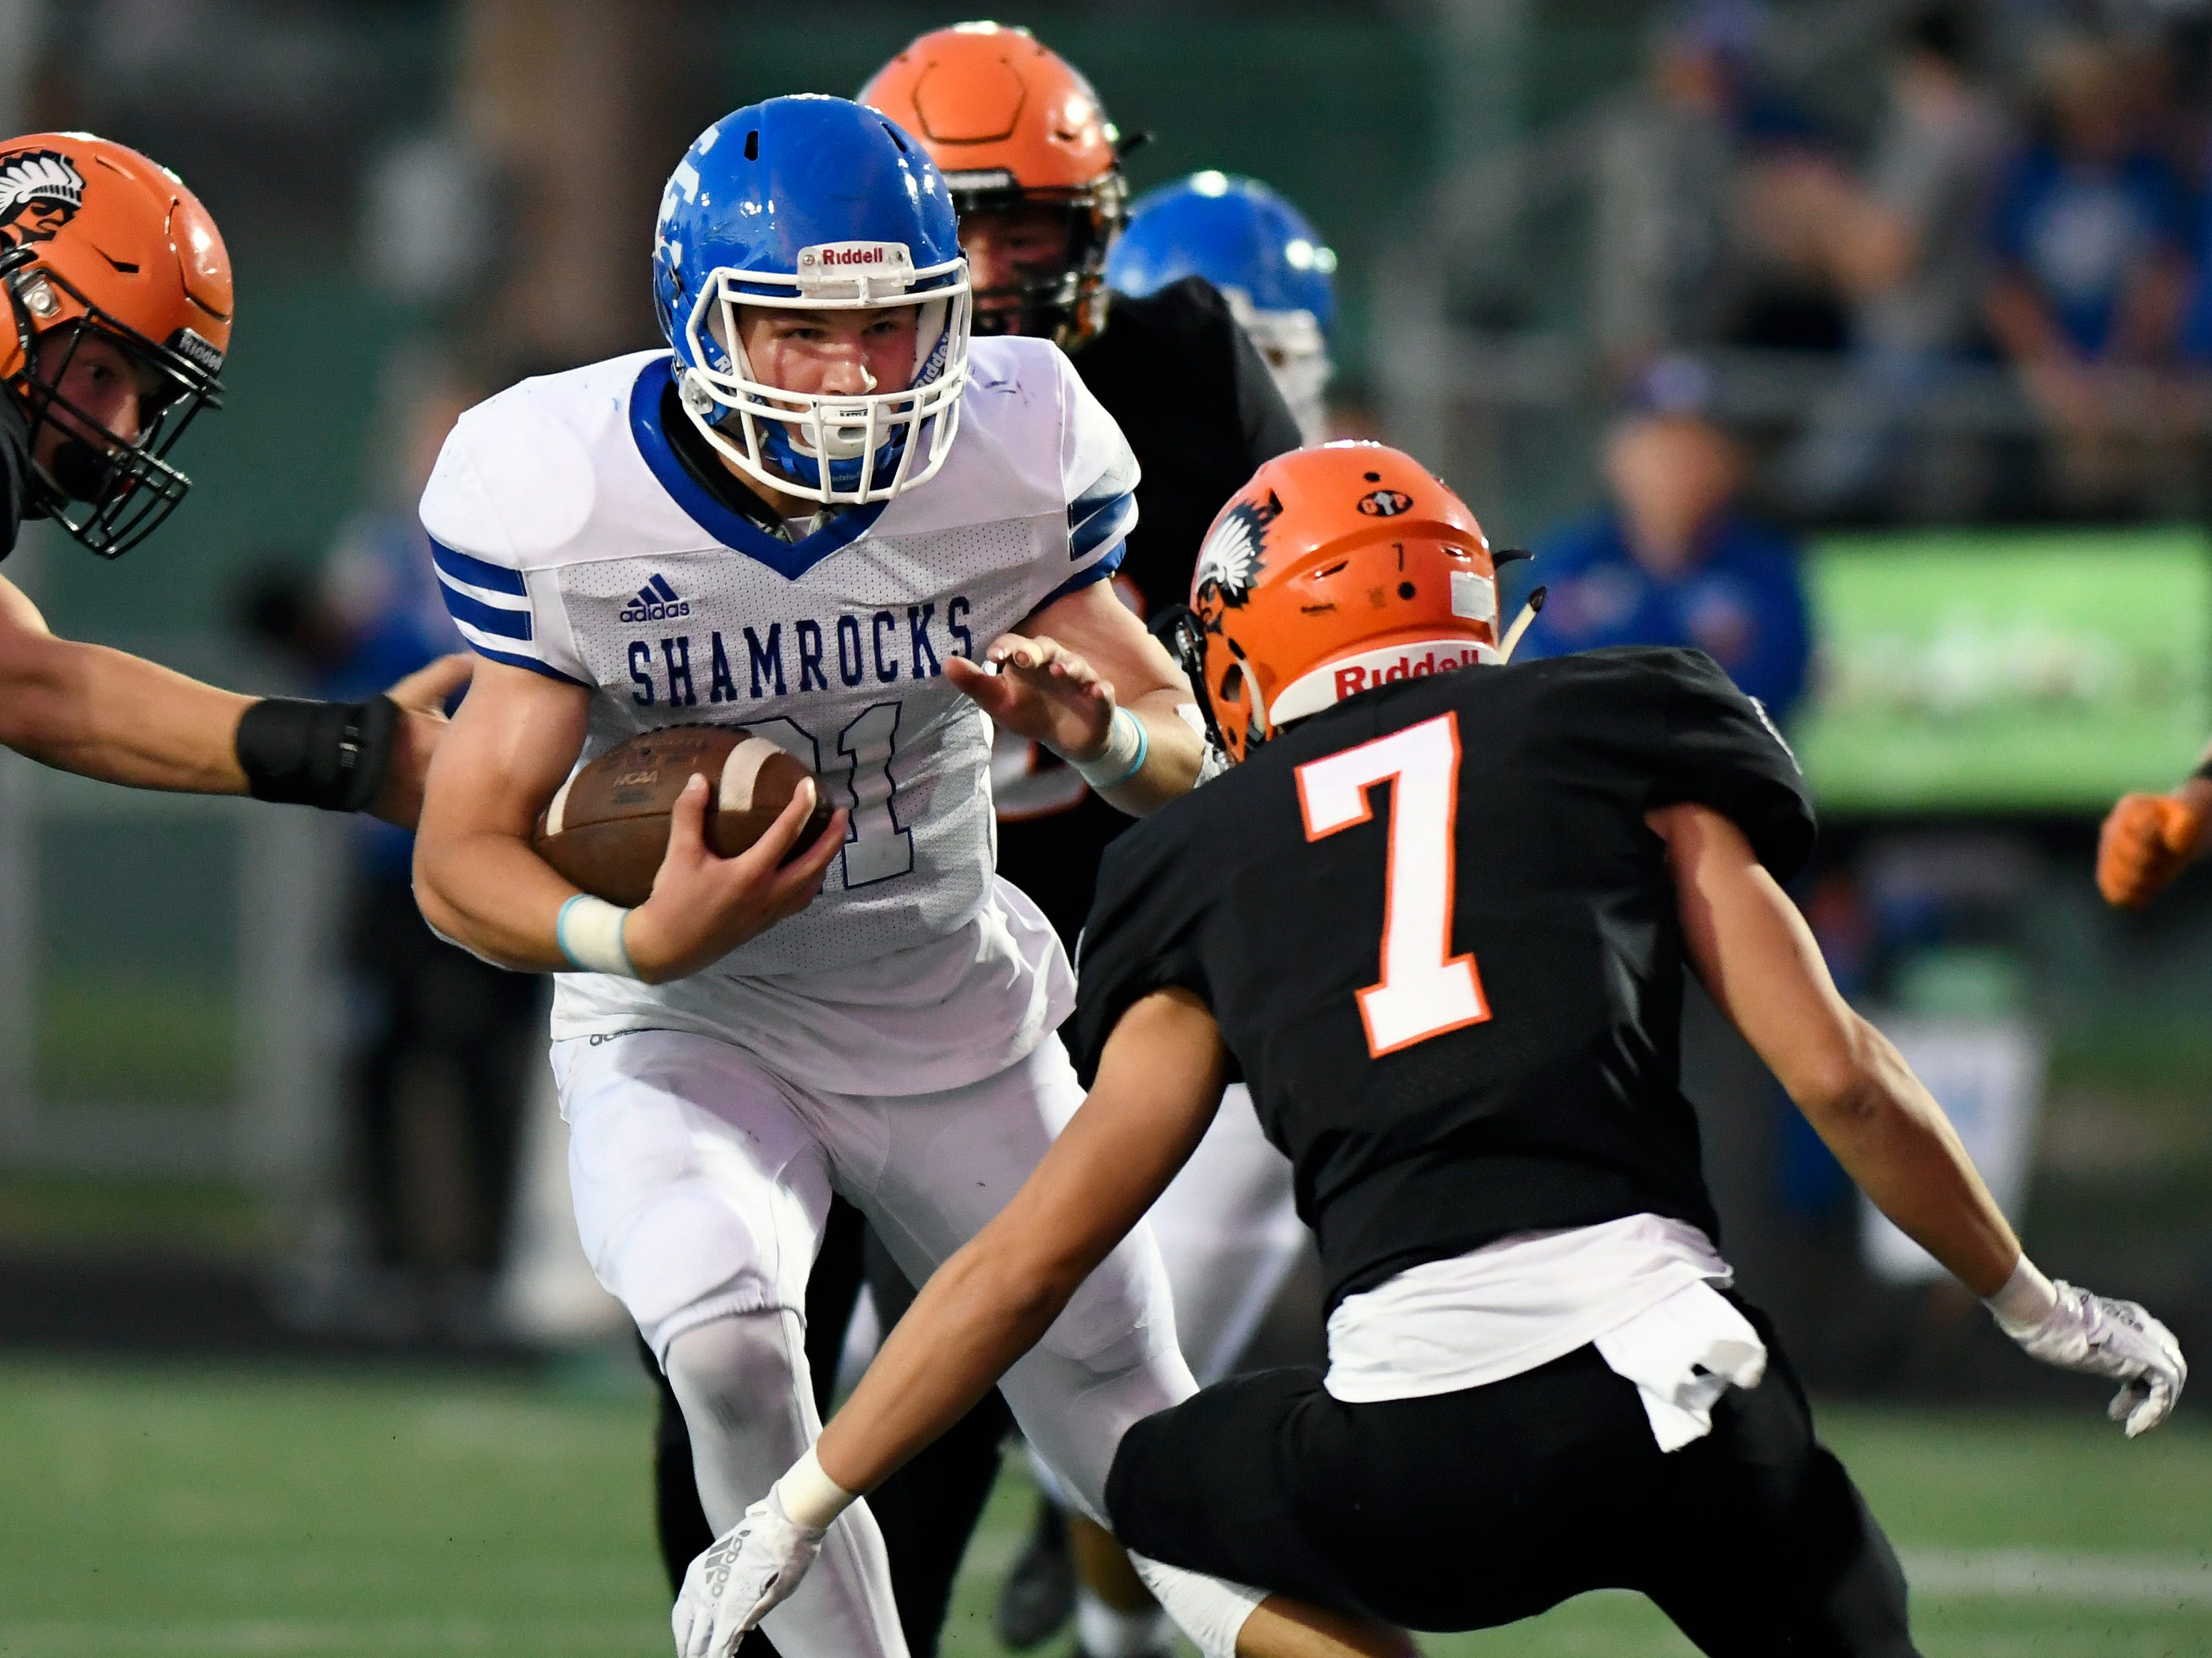 Detroit Catholic Central running back Keegan Koehler (21) rushes for yardage against Birmingham Brother Rice in the second quarter, Saturday, Sept. 22, 2018 at Hurley Field in Berkley, Mich.  Catholic Central defeated Brother Rice, 21-0.  (Jose Juarez/Hometown Life)